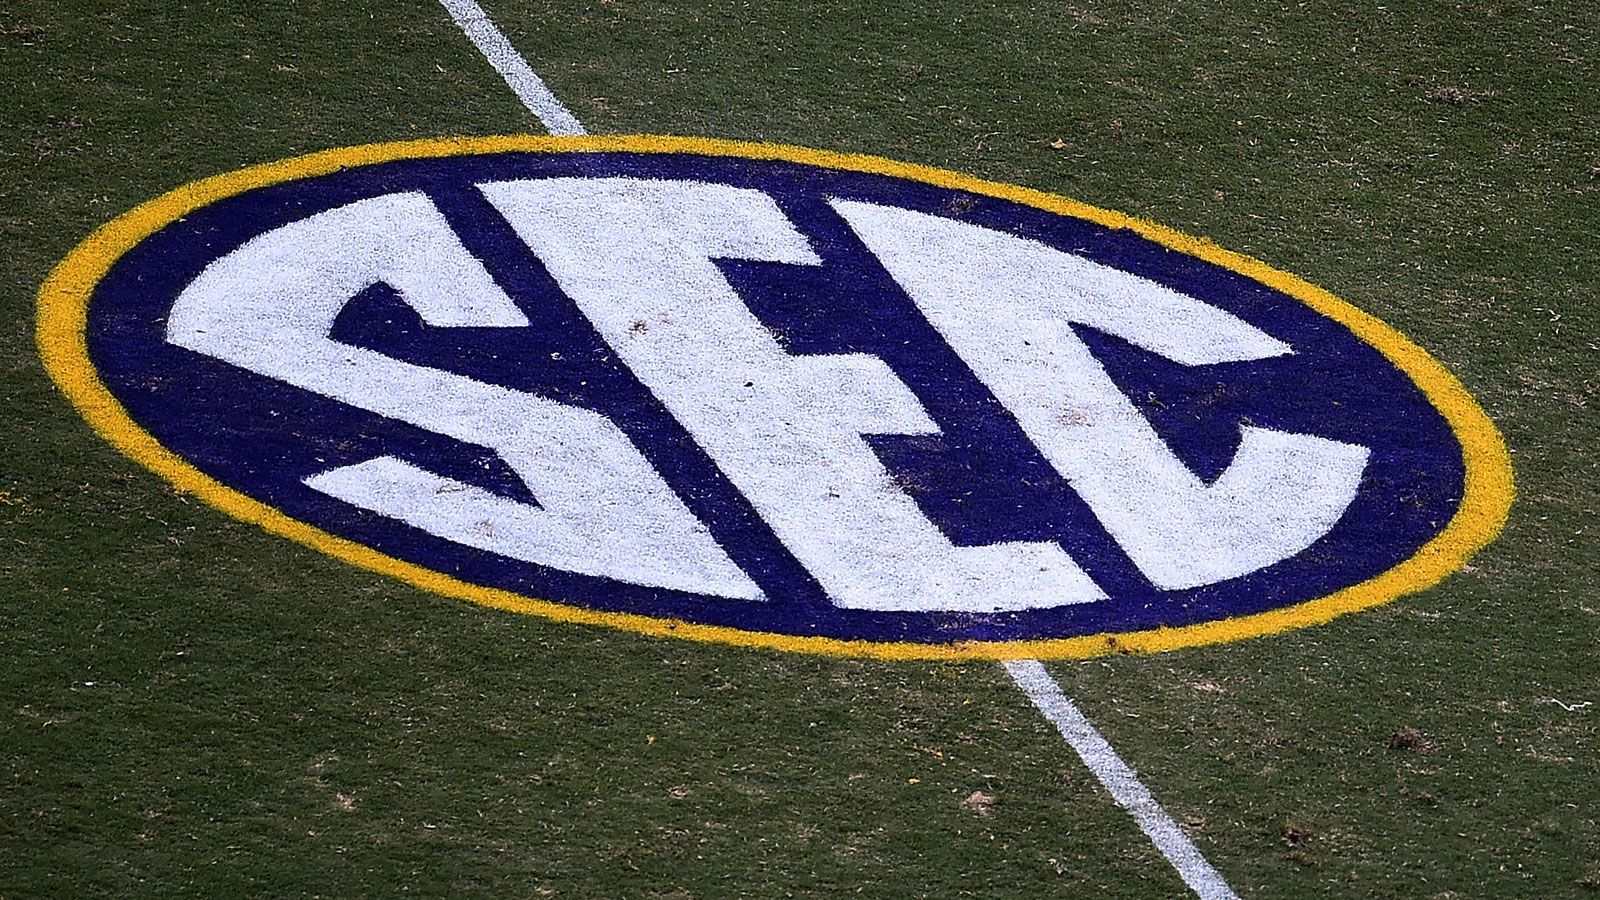 SEC teams in AP Poll